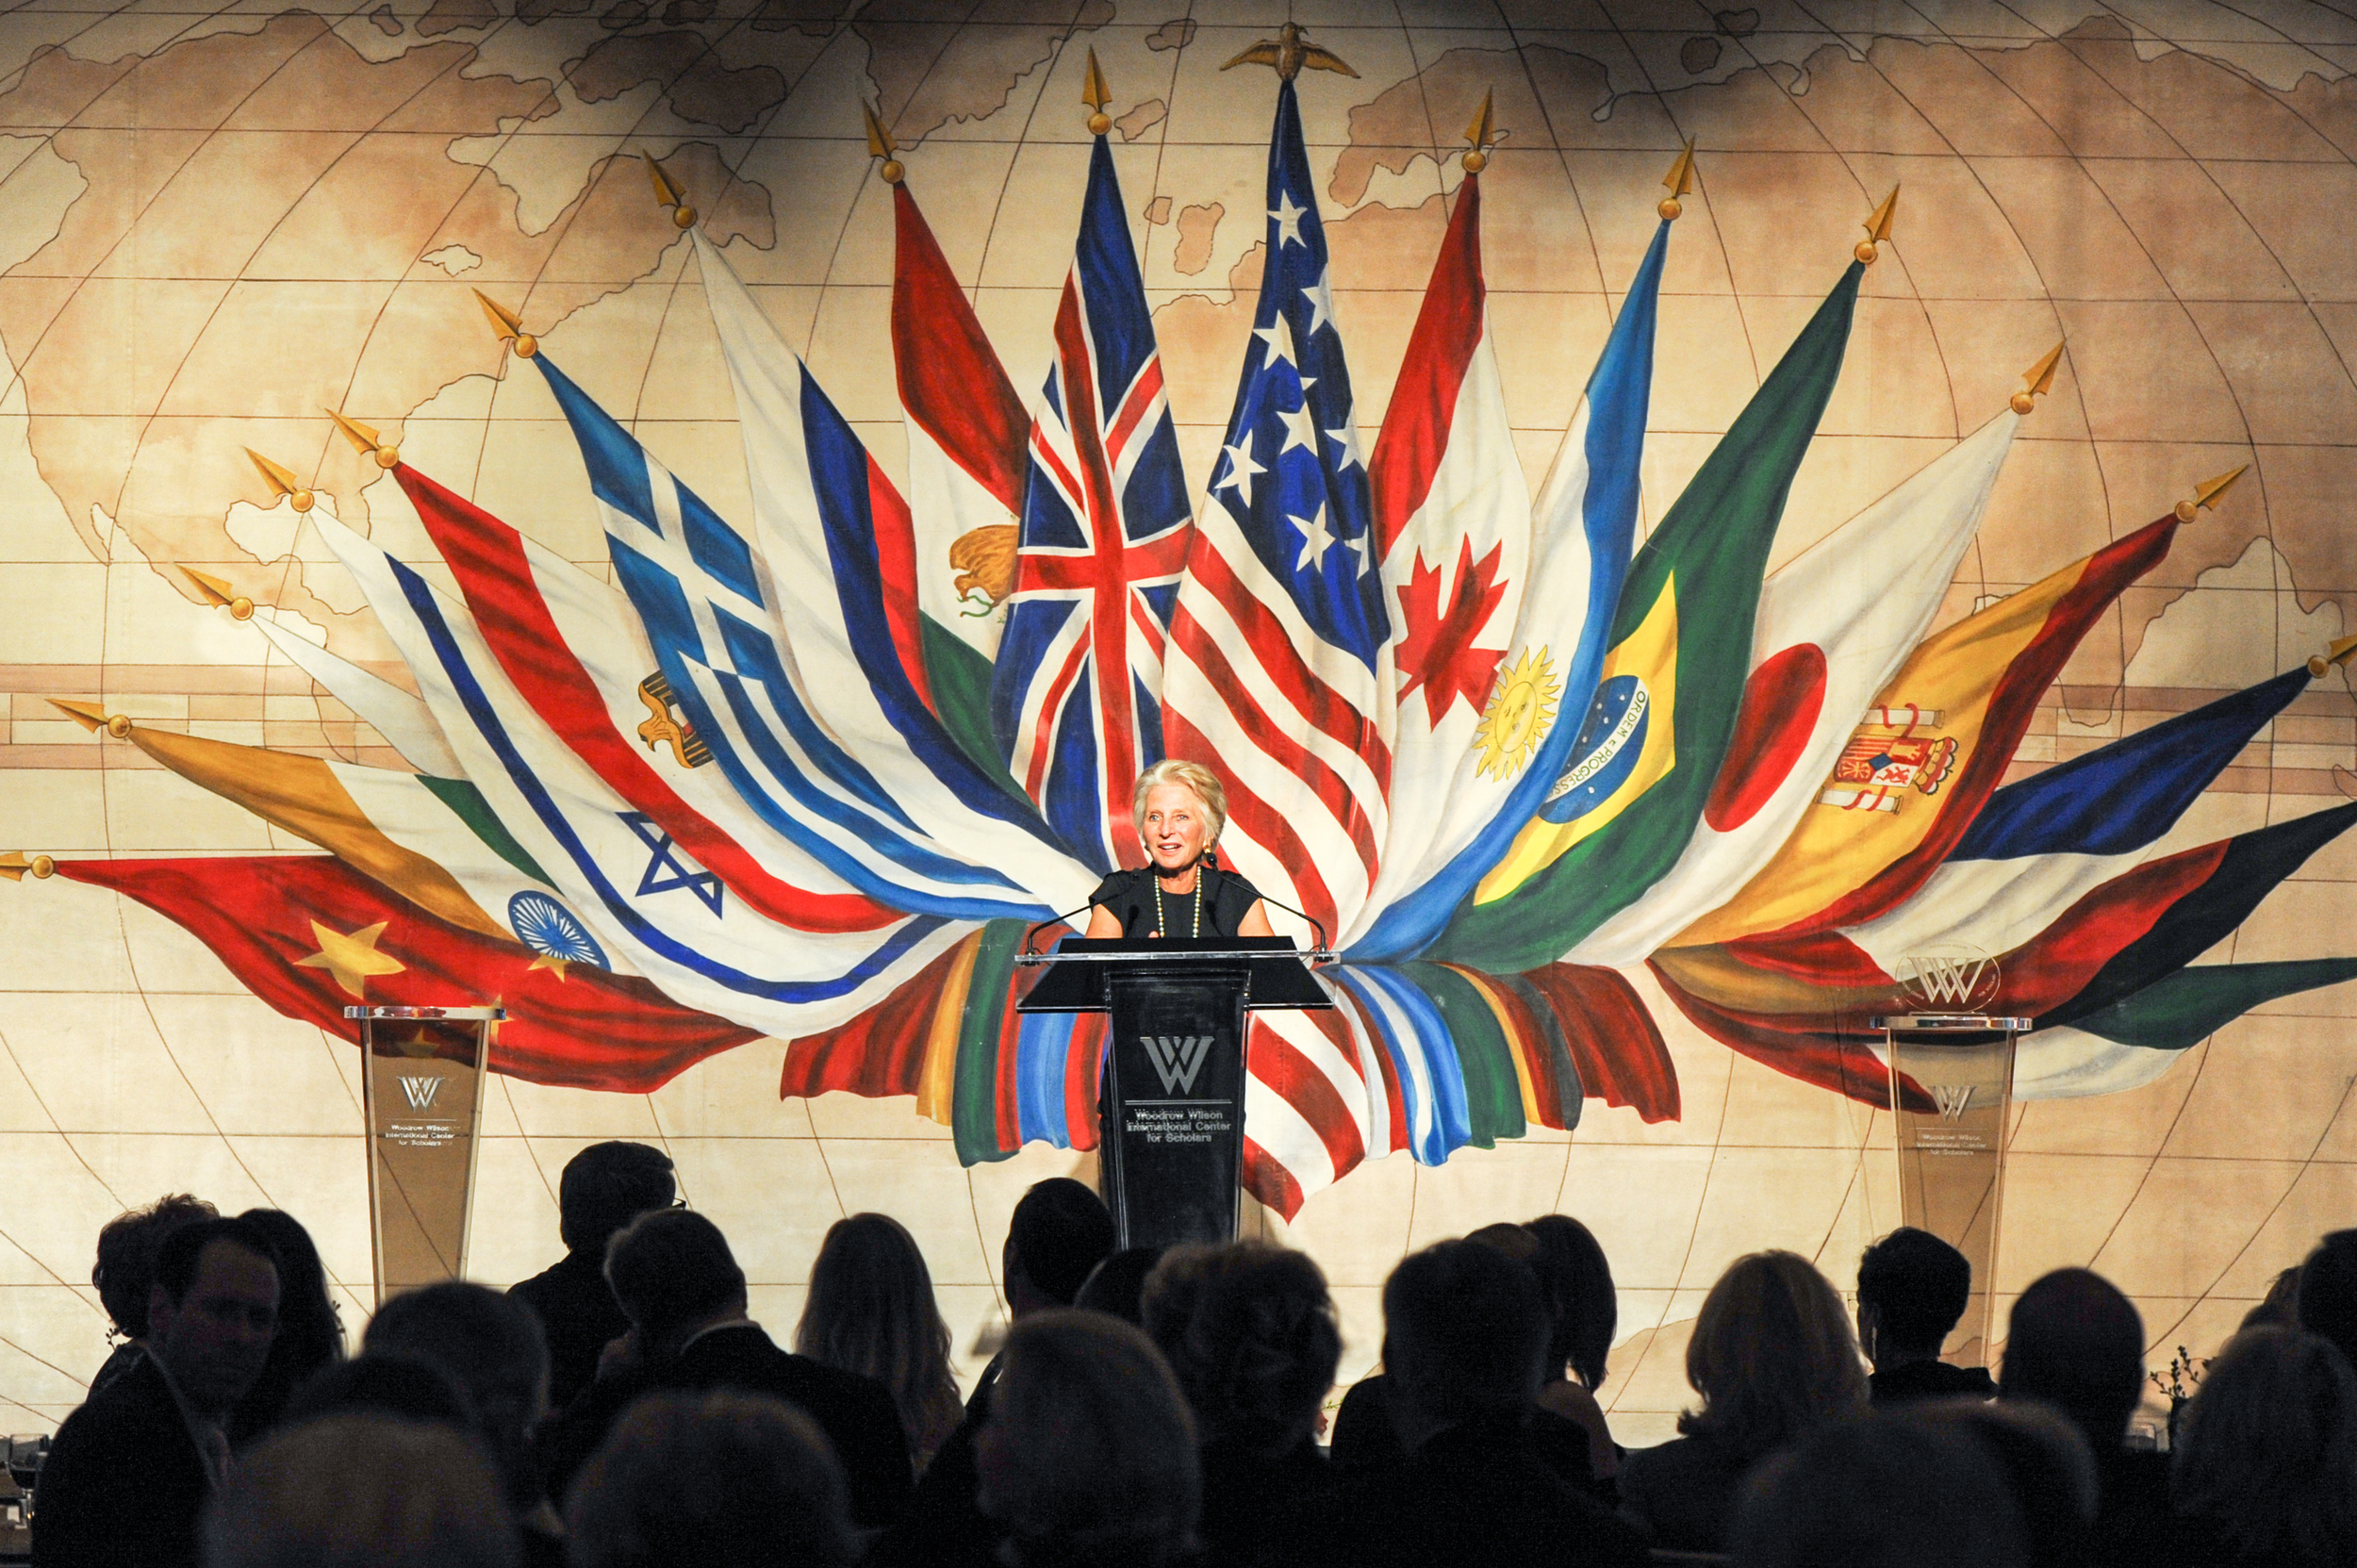 Jane Harman, the Director, President, and CEO of the Wilson Center, gives remarks at the award ceremony in Dallas in 2014.